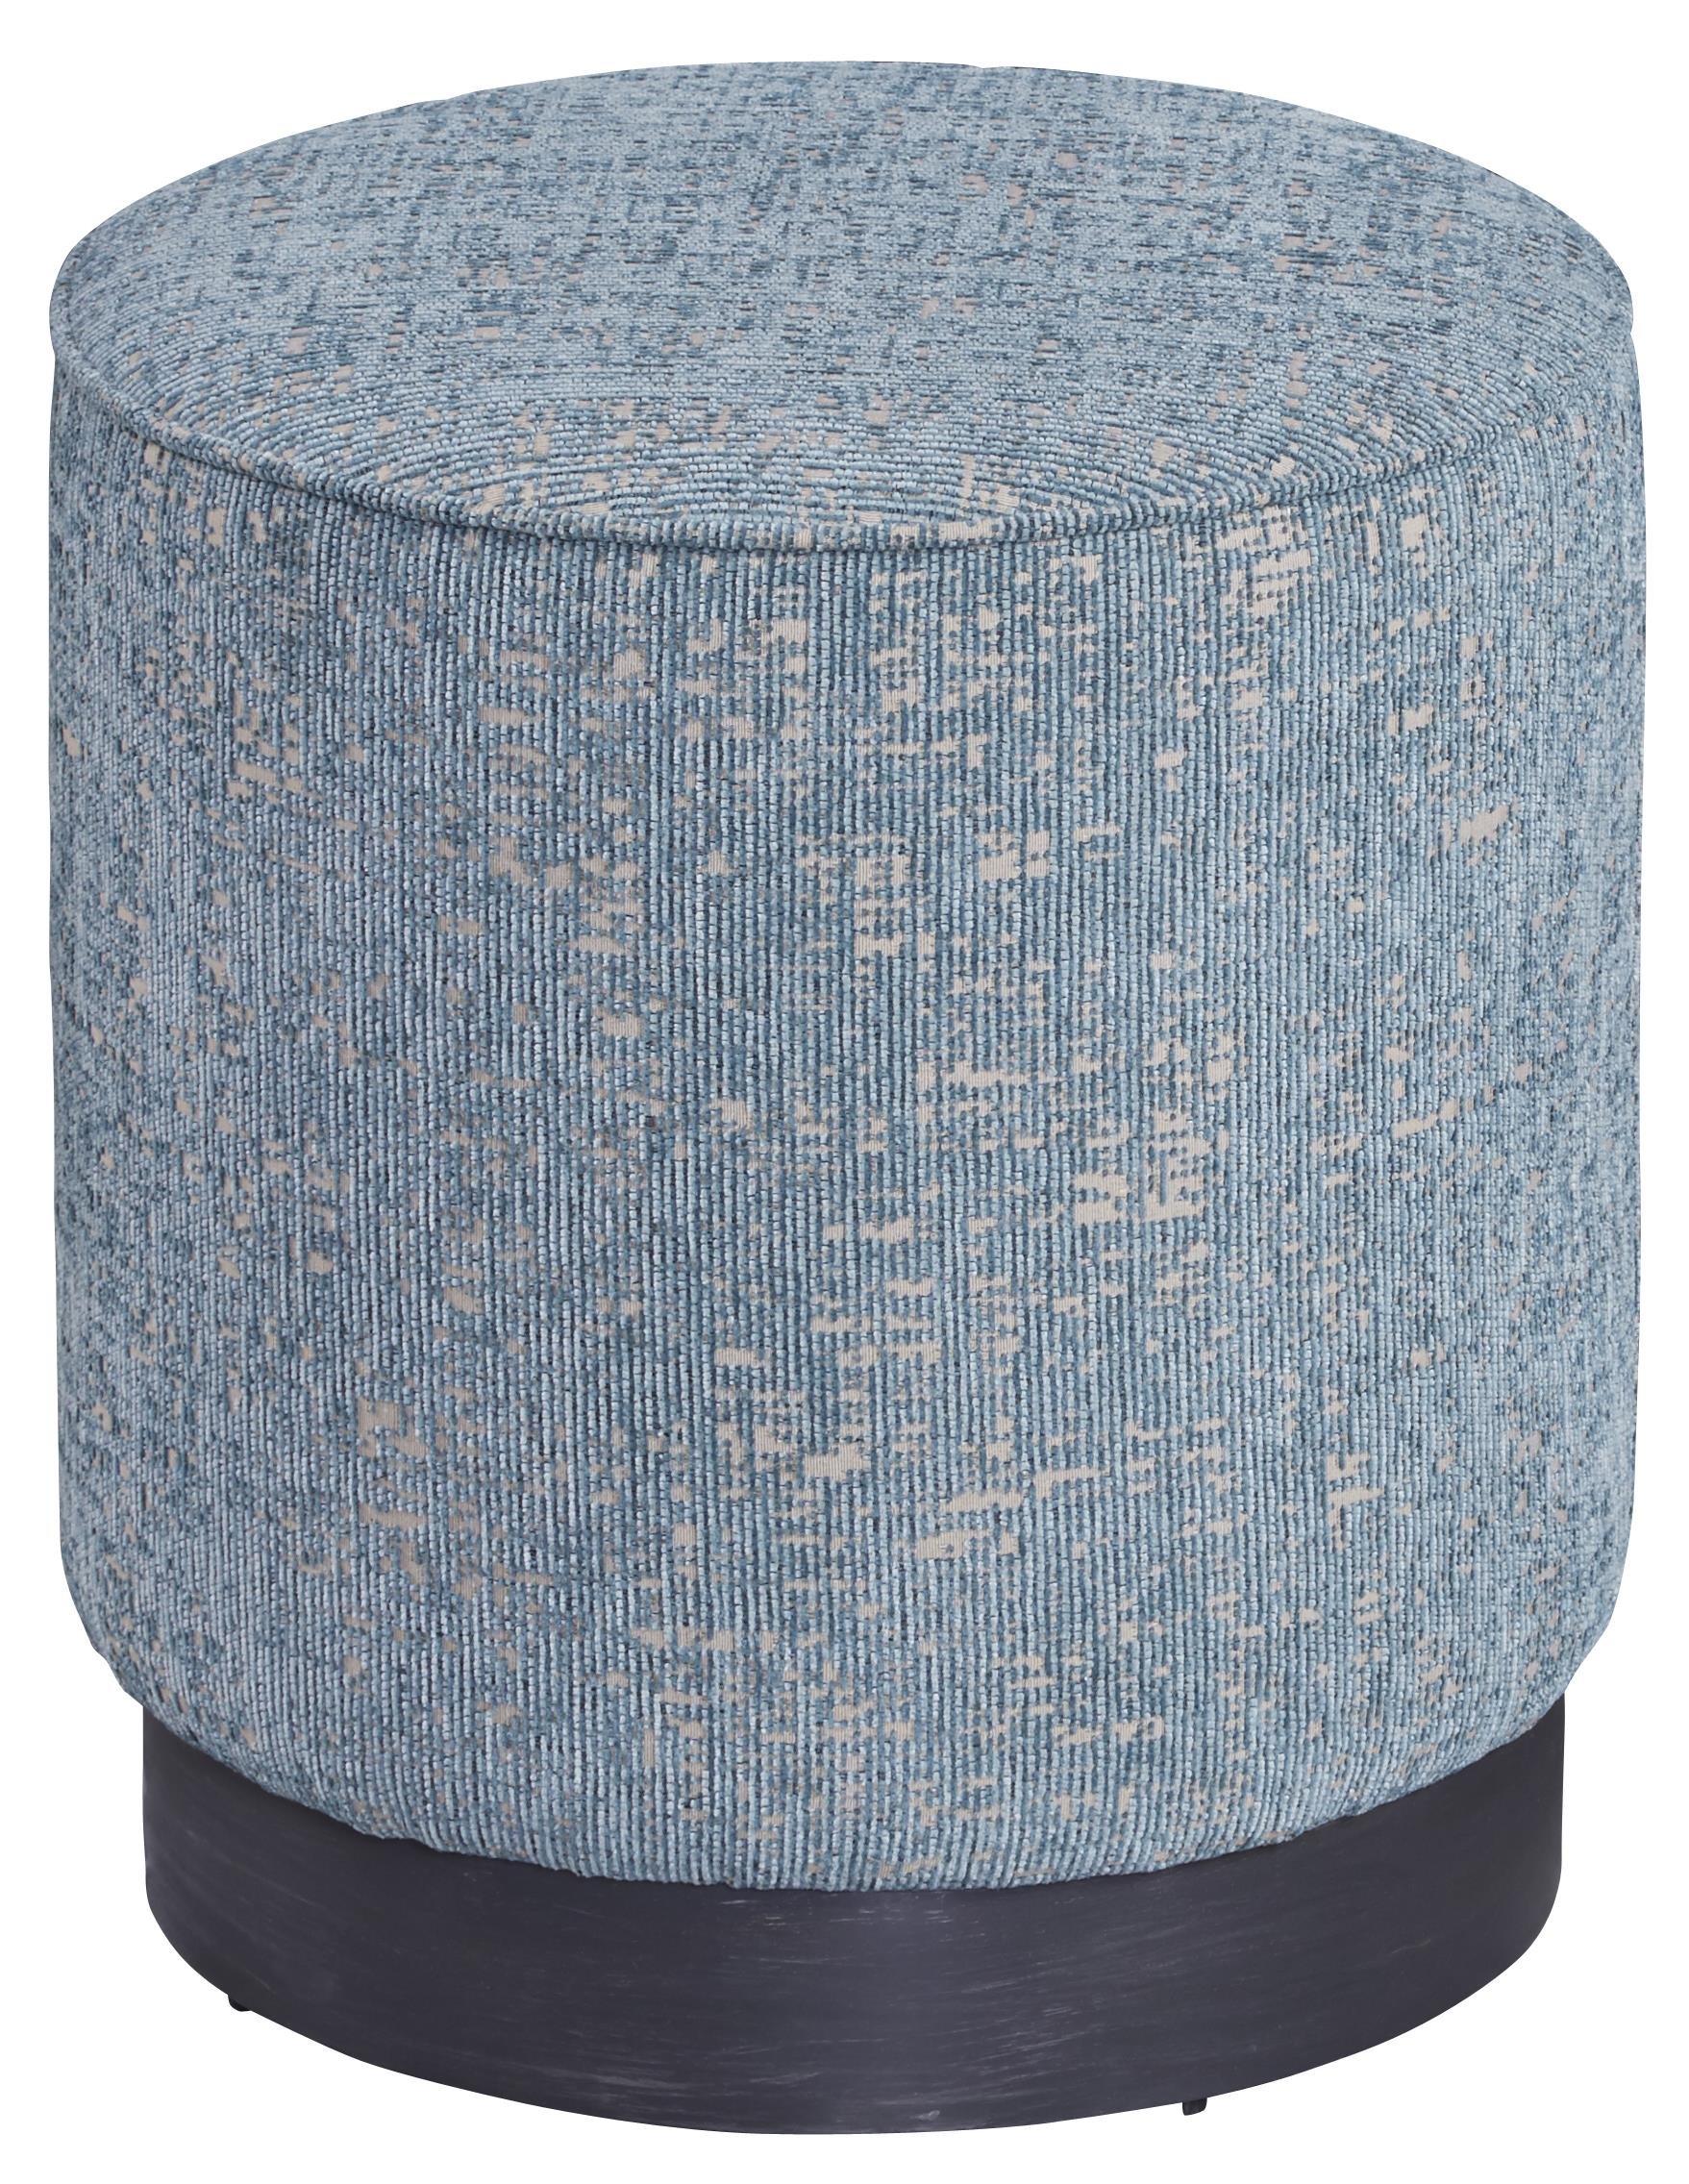 Belfort Signature Urban Treasures 14th and U Upholstered Stool - Item Number: 223371-1251